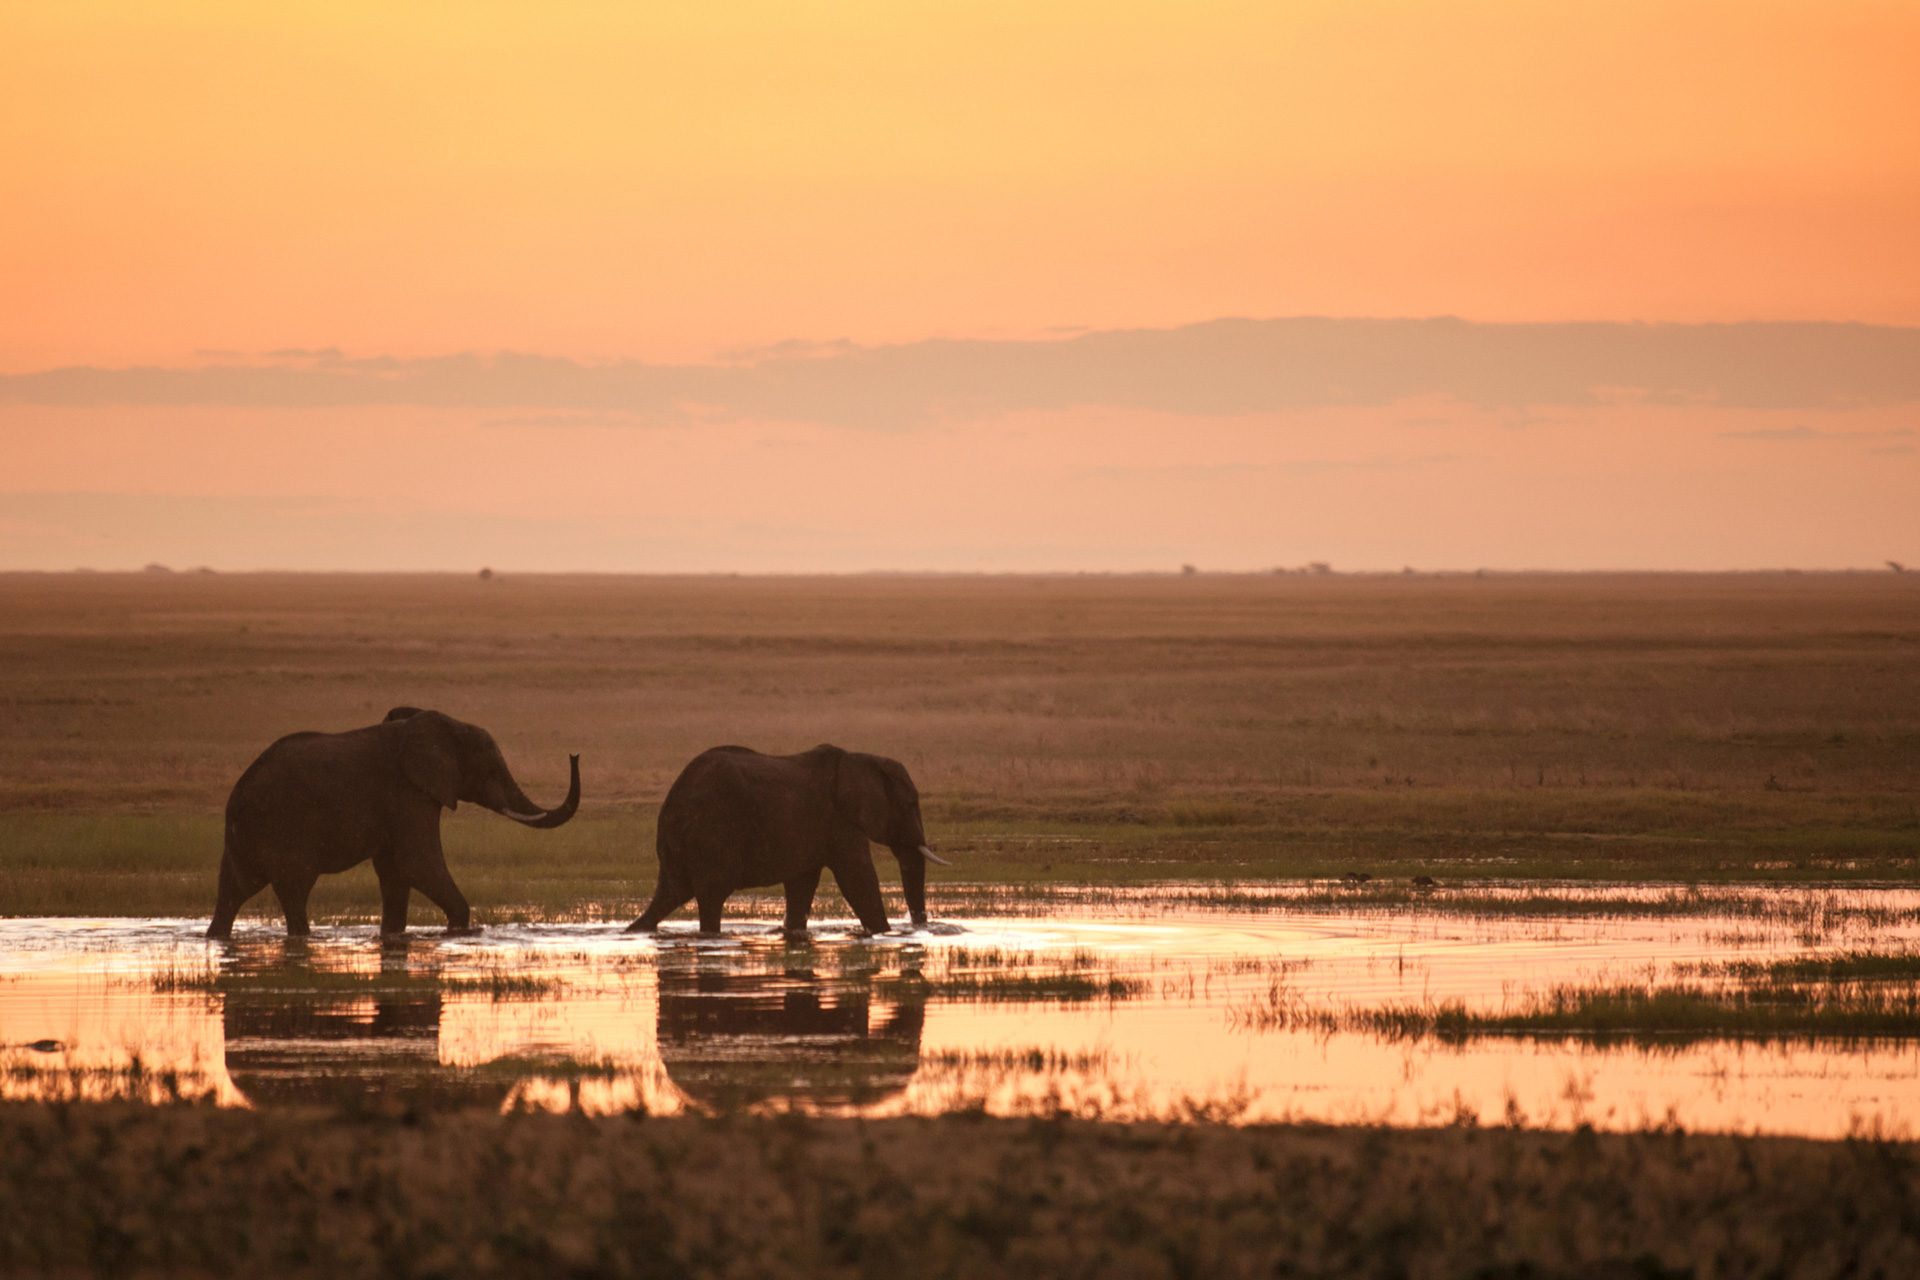 Image of elephants in the sunset